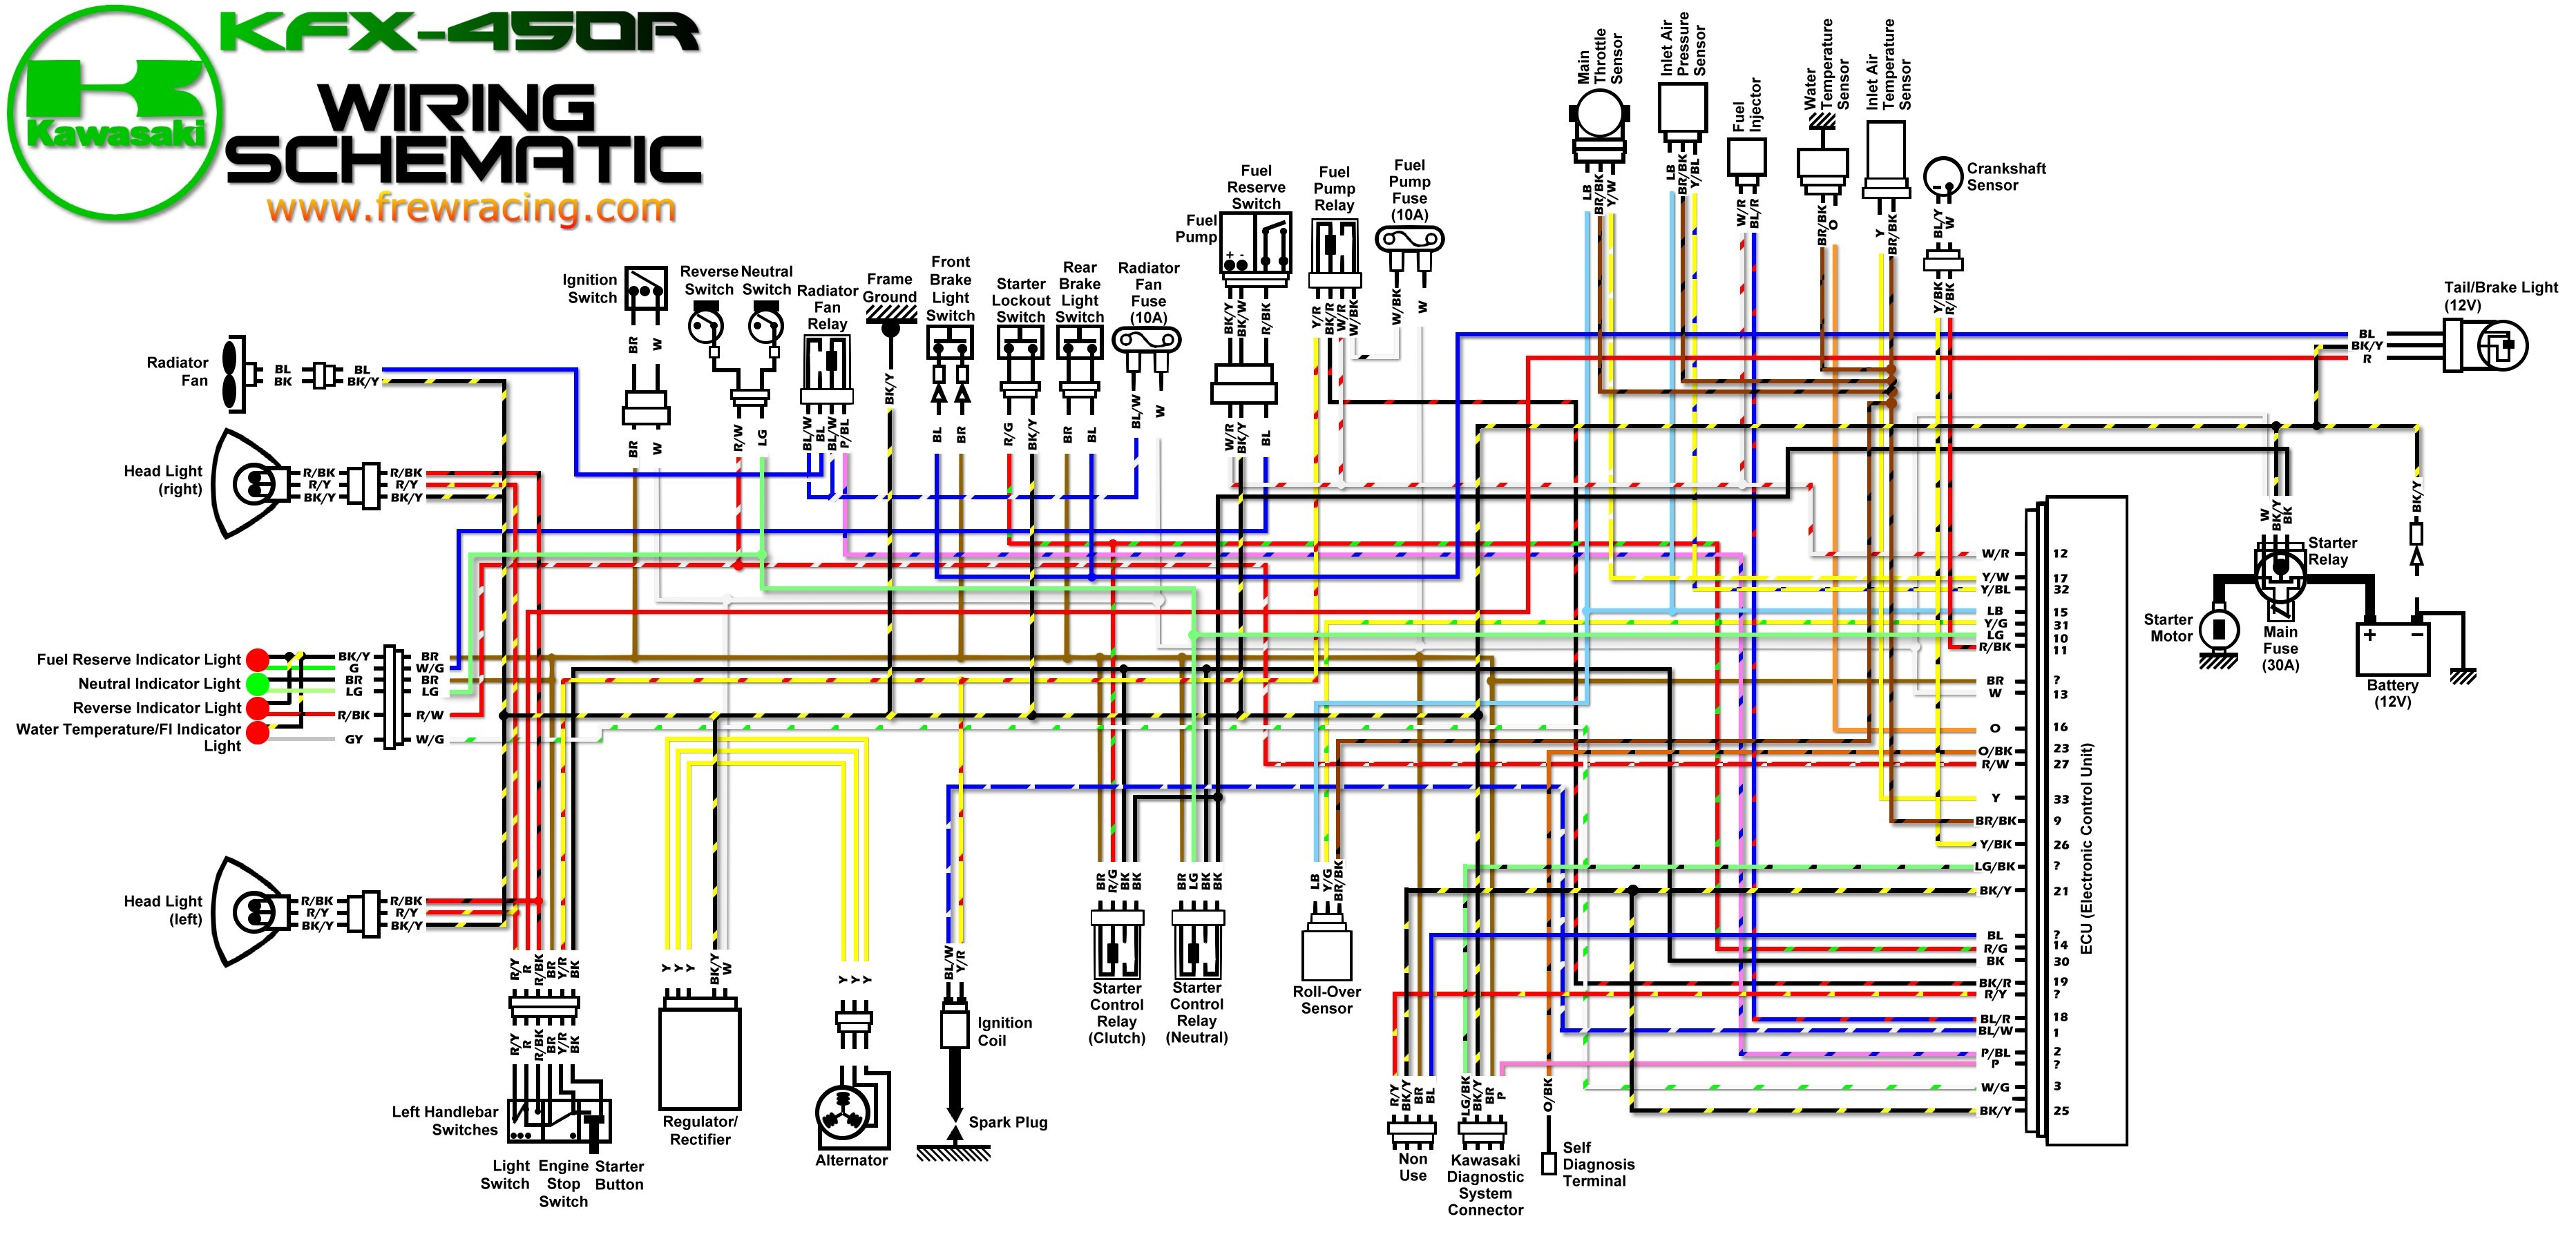 Suzuki Ltr450 Wiring Diagram Another Blog About 06 Gsxr Wire Harness Color Code Ltr 450 Detailed Schematic Diagrams Rh 4rmotorsports Com 2006